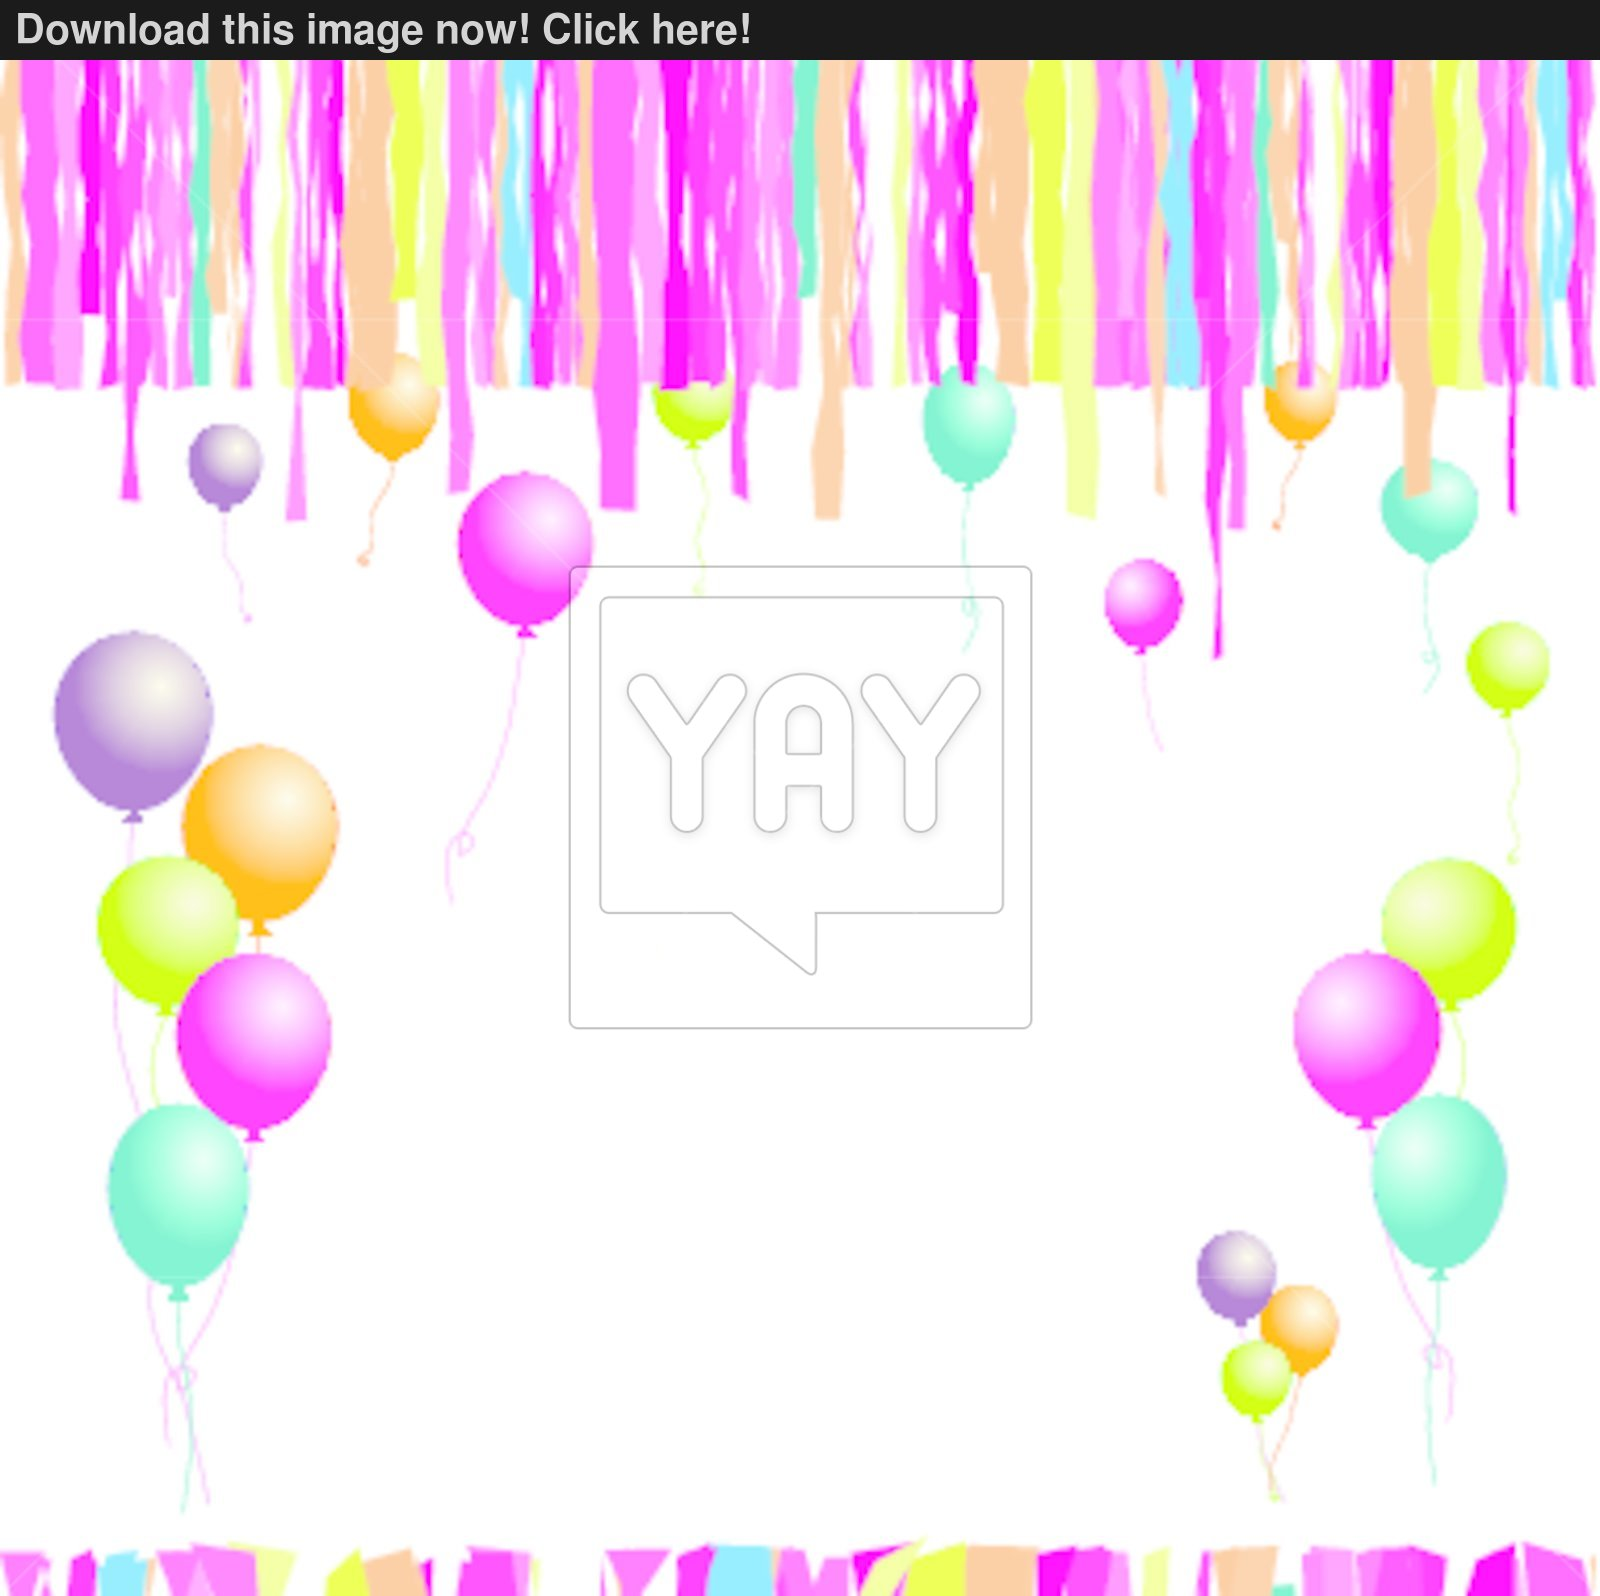 happy birthday with photo insert ; happy-birthday-balloons-and-confetti-insert-your-text-here-8373683